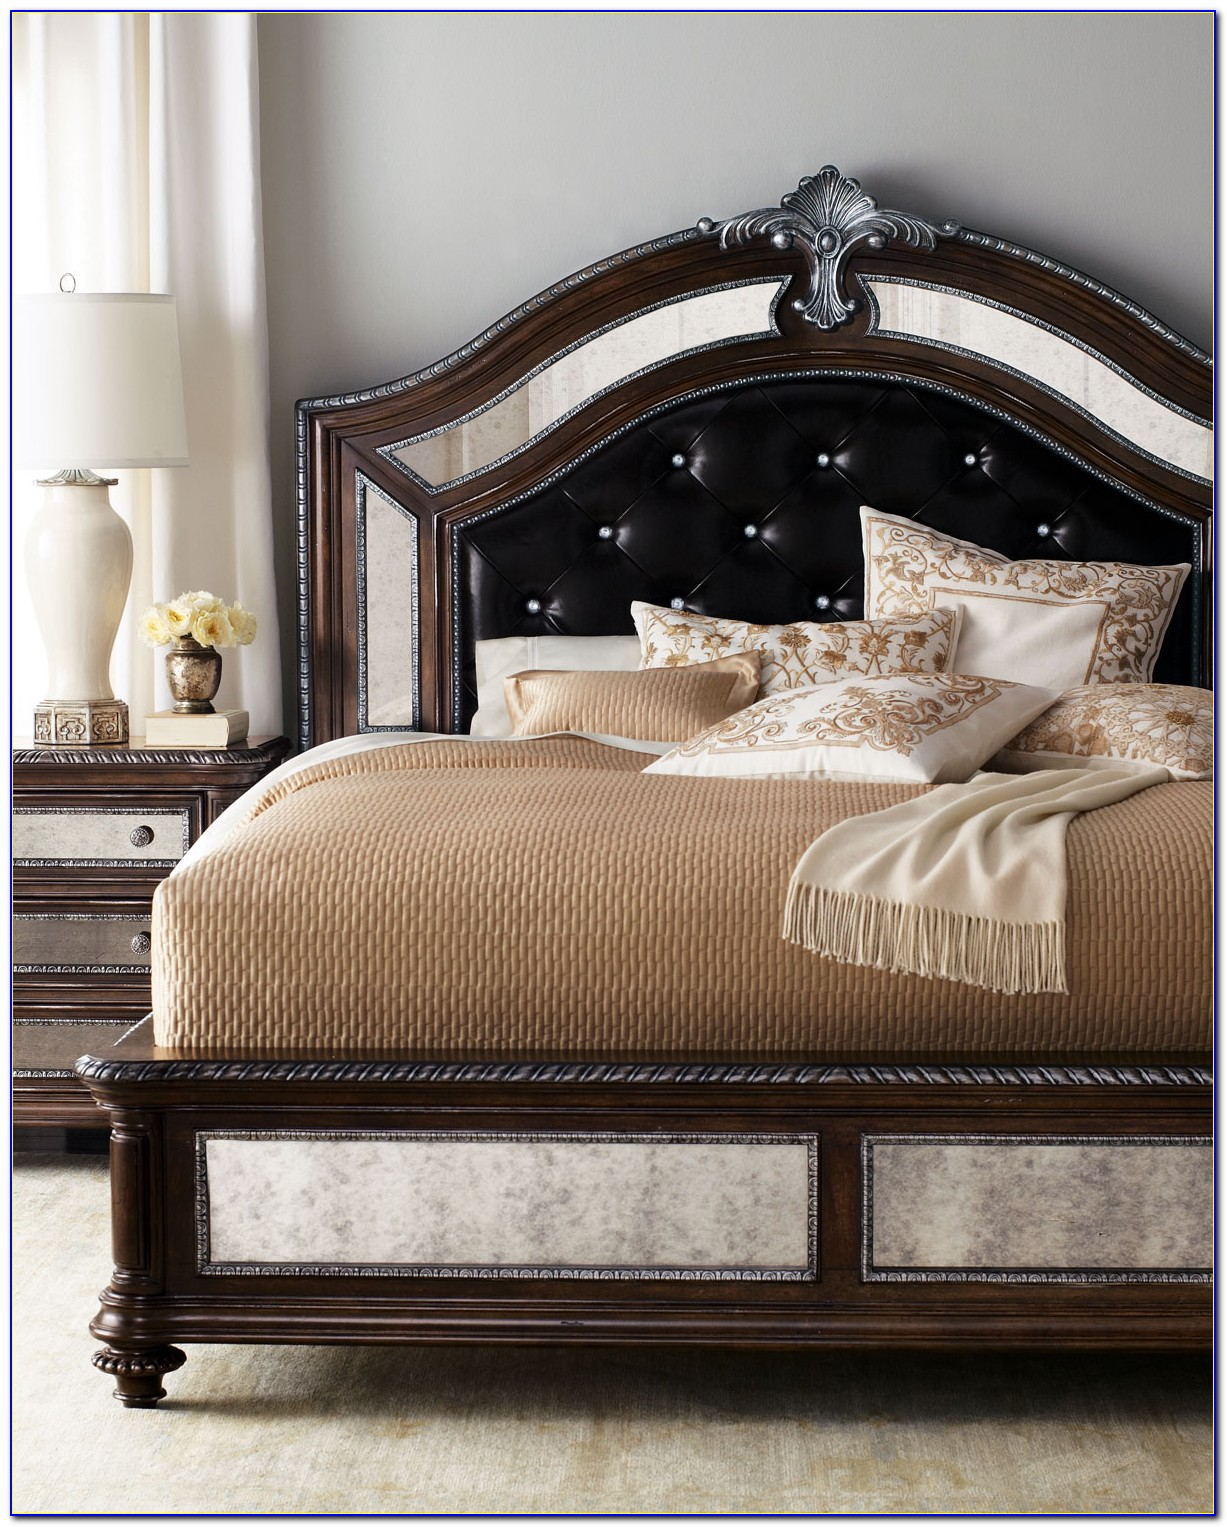 King Size Bed Frame With Leather Headboard